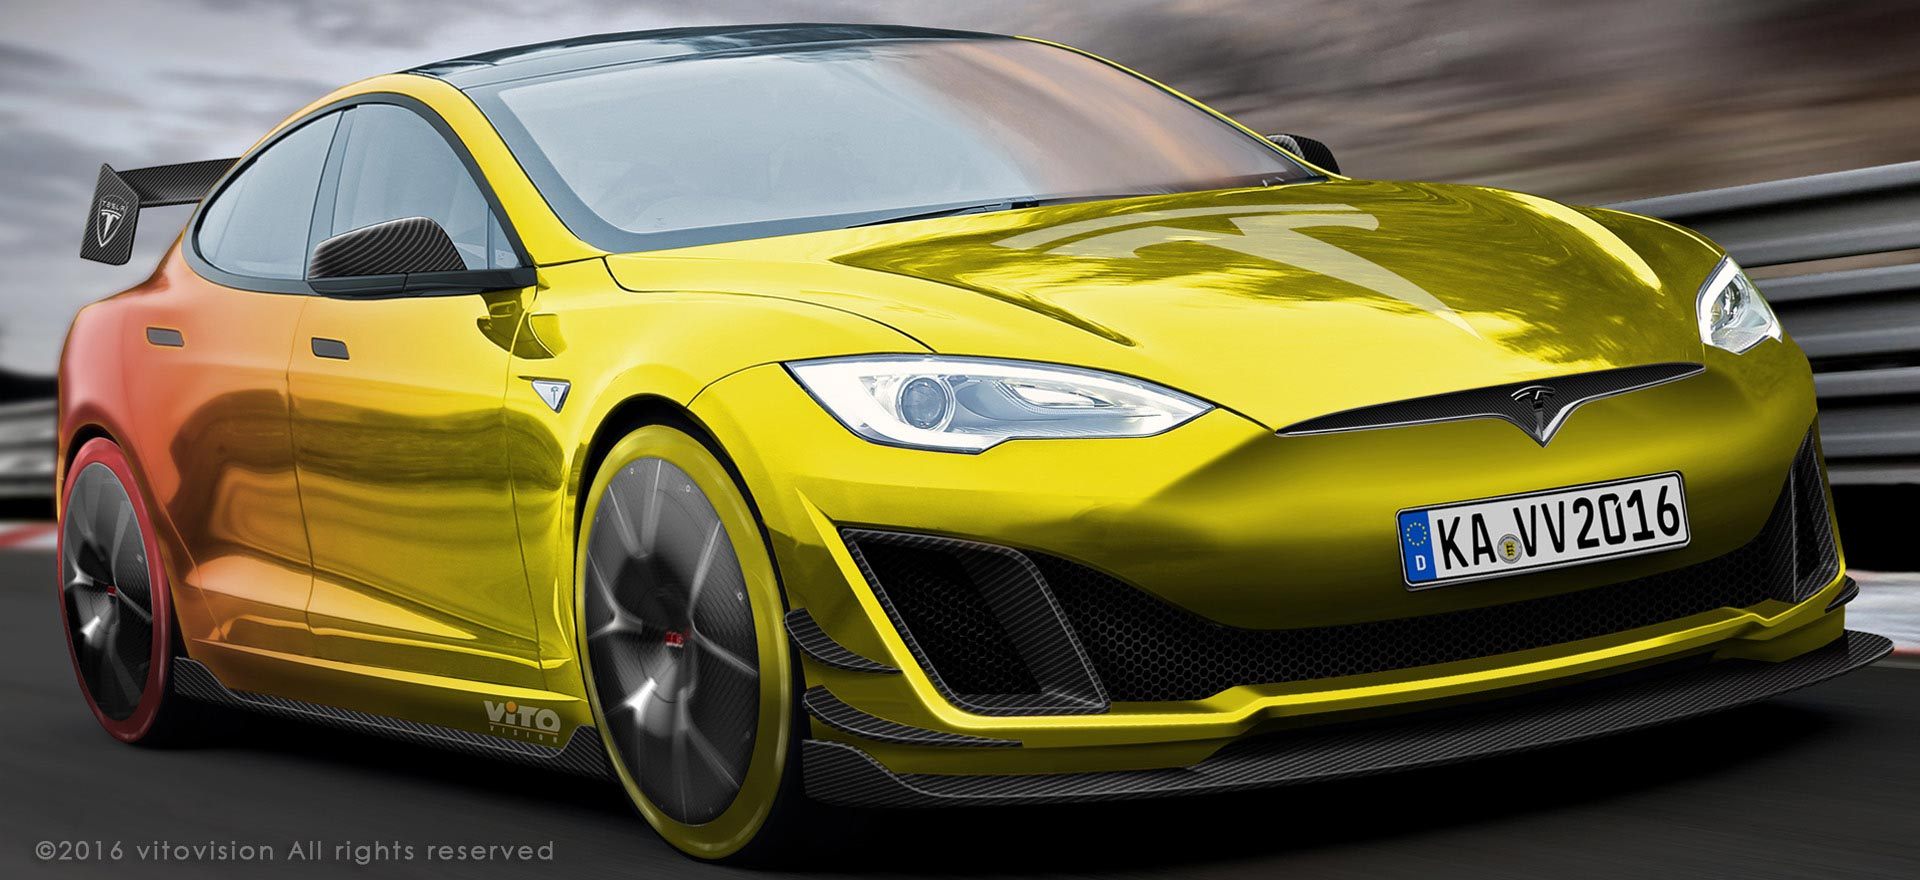 Vitovision creates the automotive design for Tesla race innovation